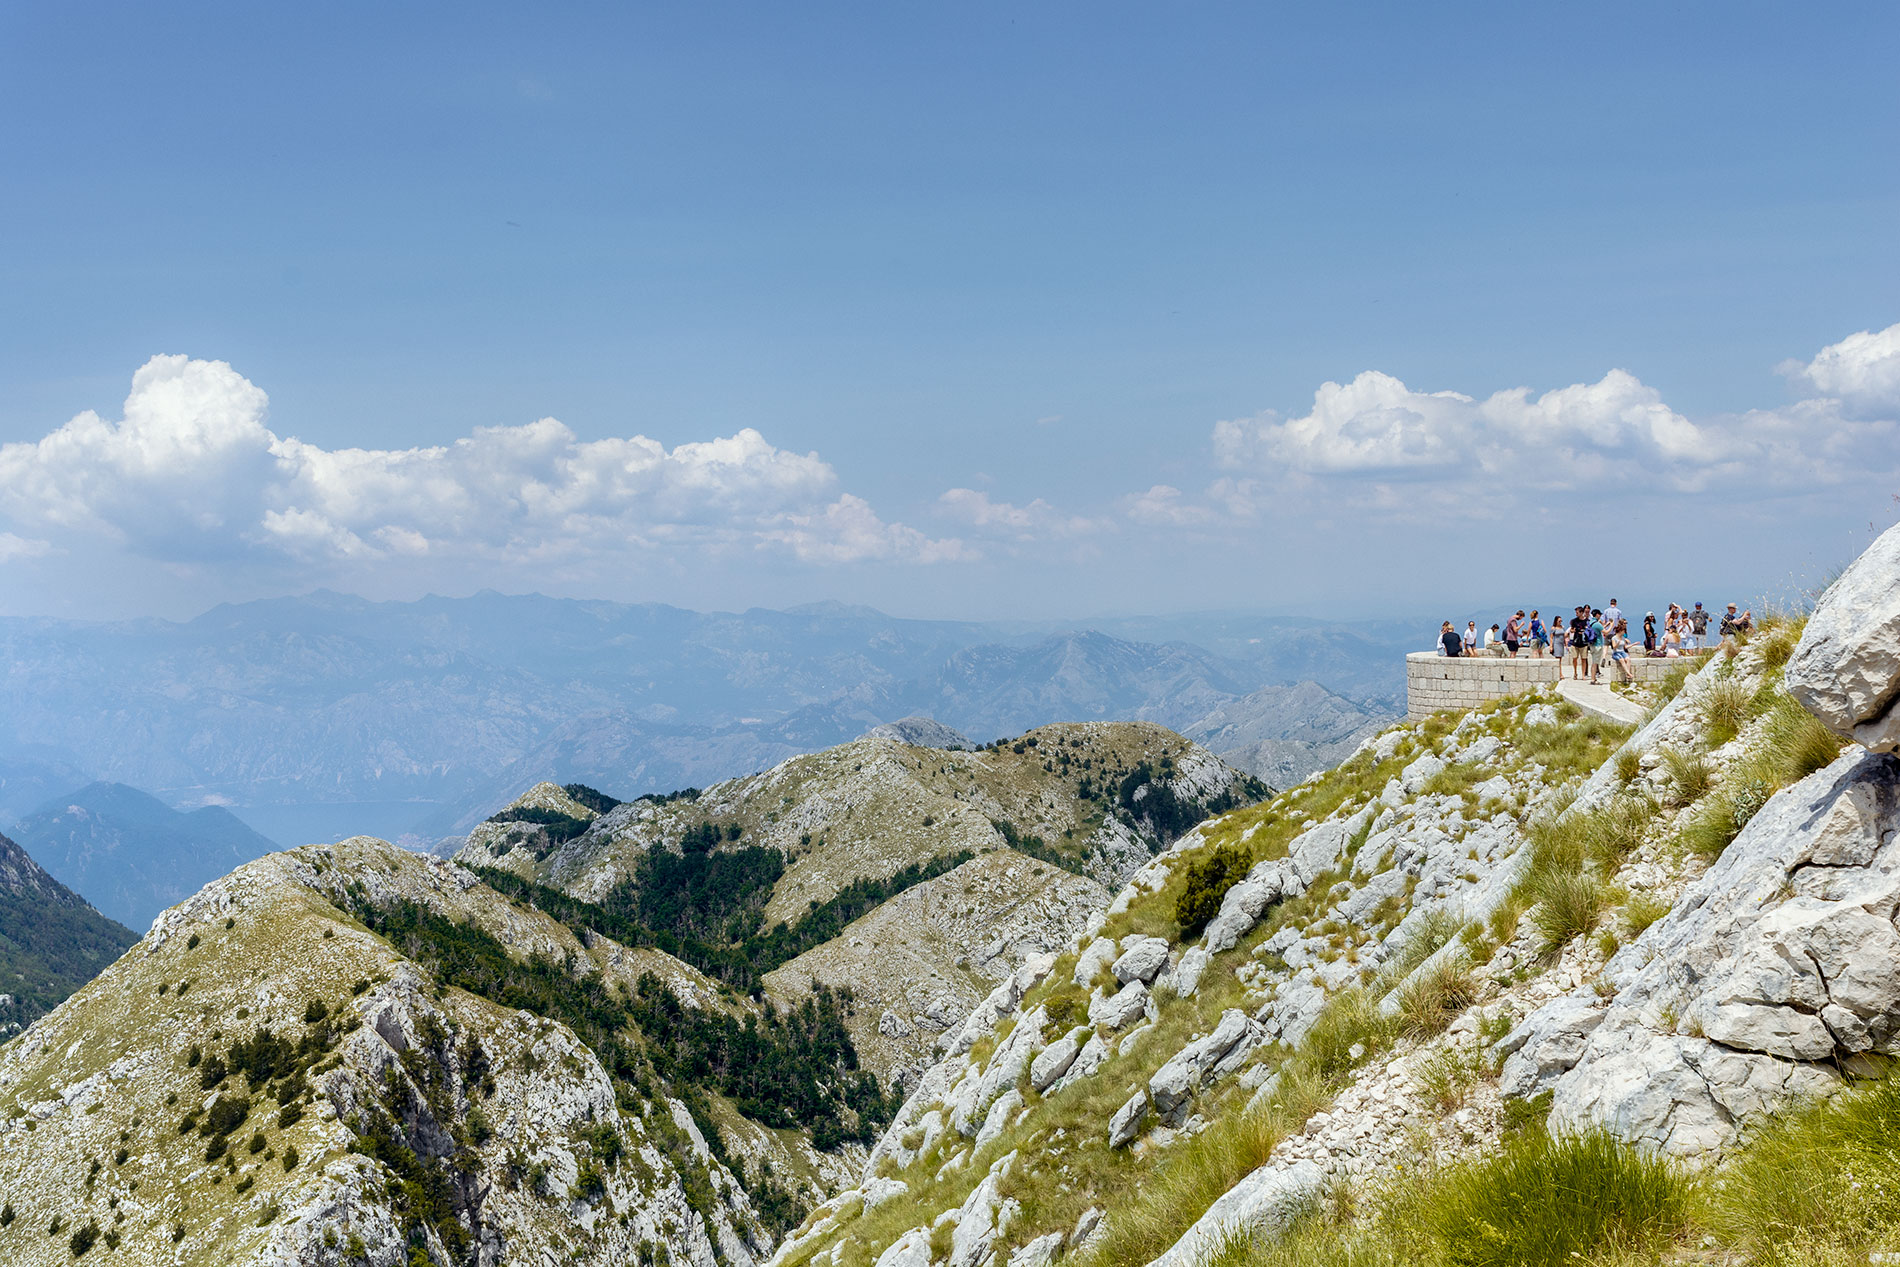 The Njegos Mausoleum is located in the Lovcen National Park and is considered a holy altar by Montenegrins